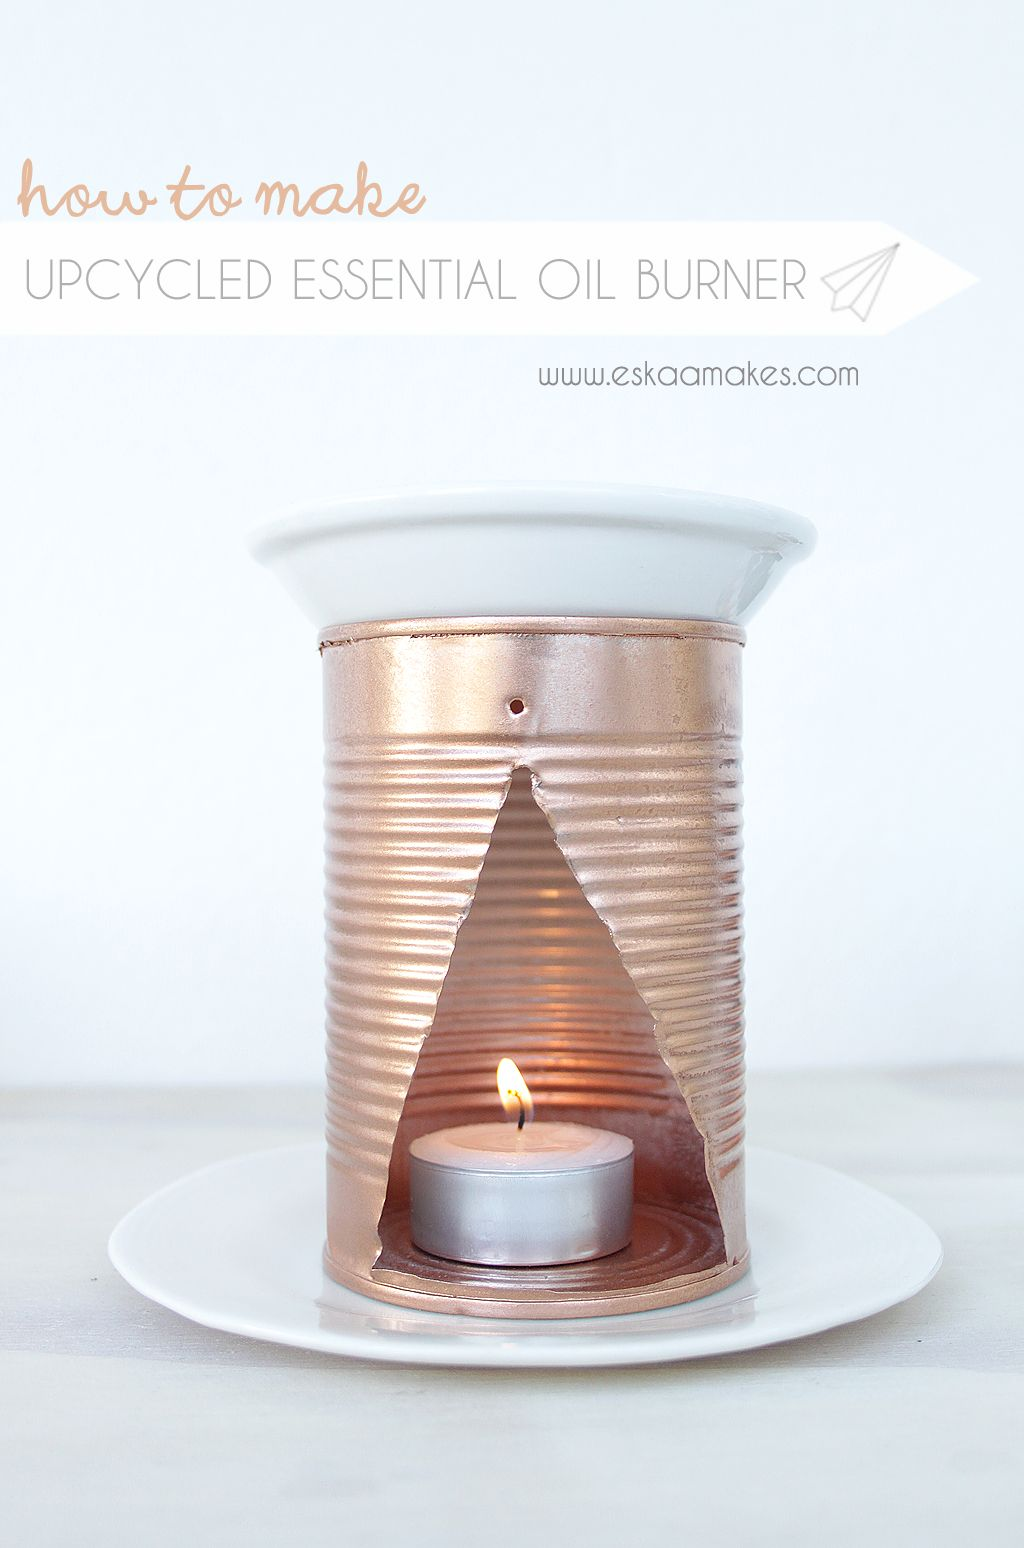 How To Make Upcycled Essential Oil Burner Es Kaa Makes Essential Oil Burner Essential Oil Candles Diy Diy Candles Scented